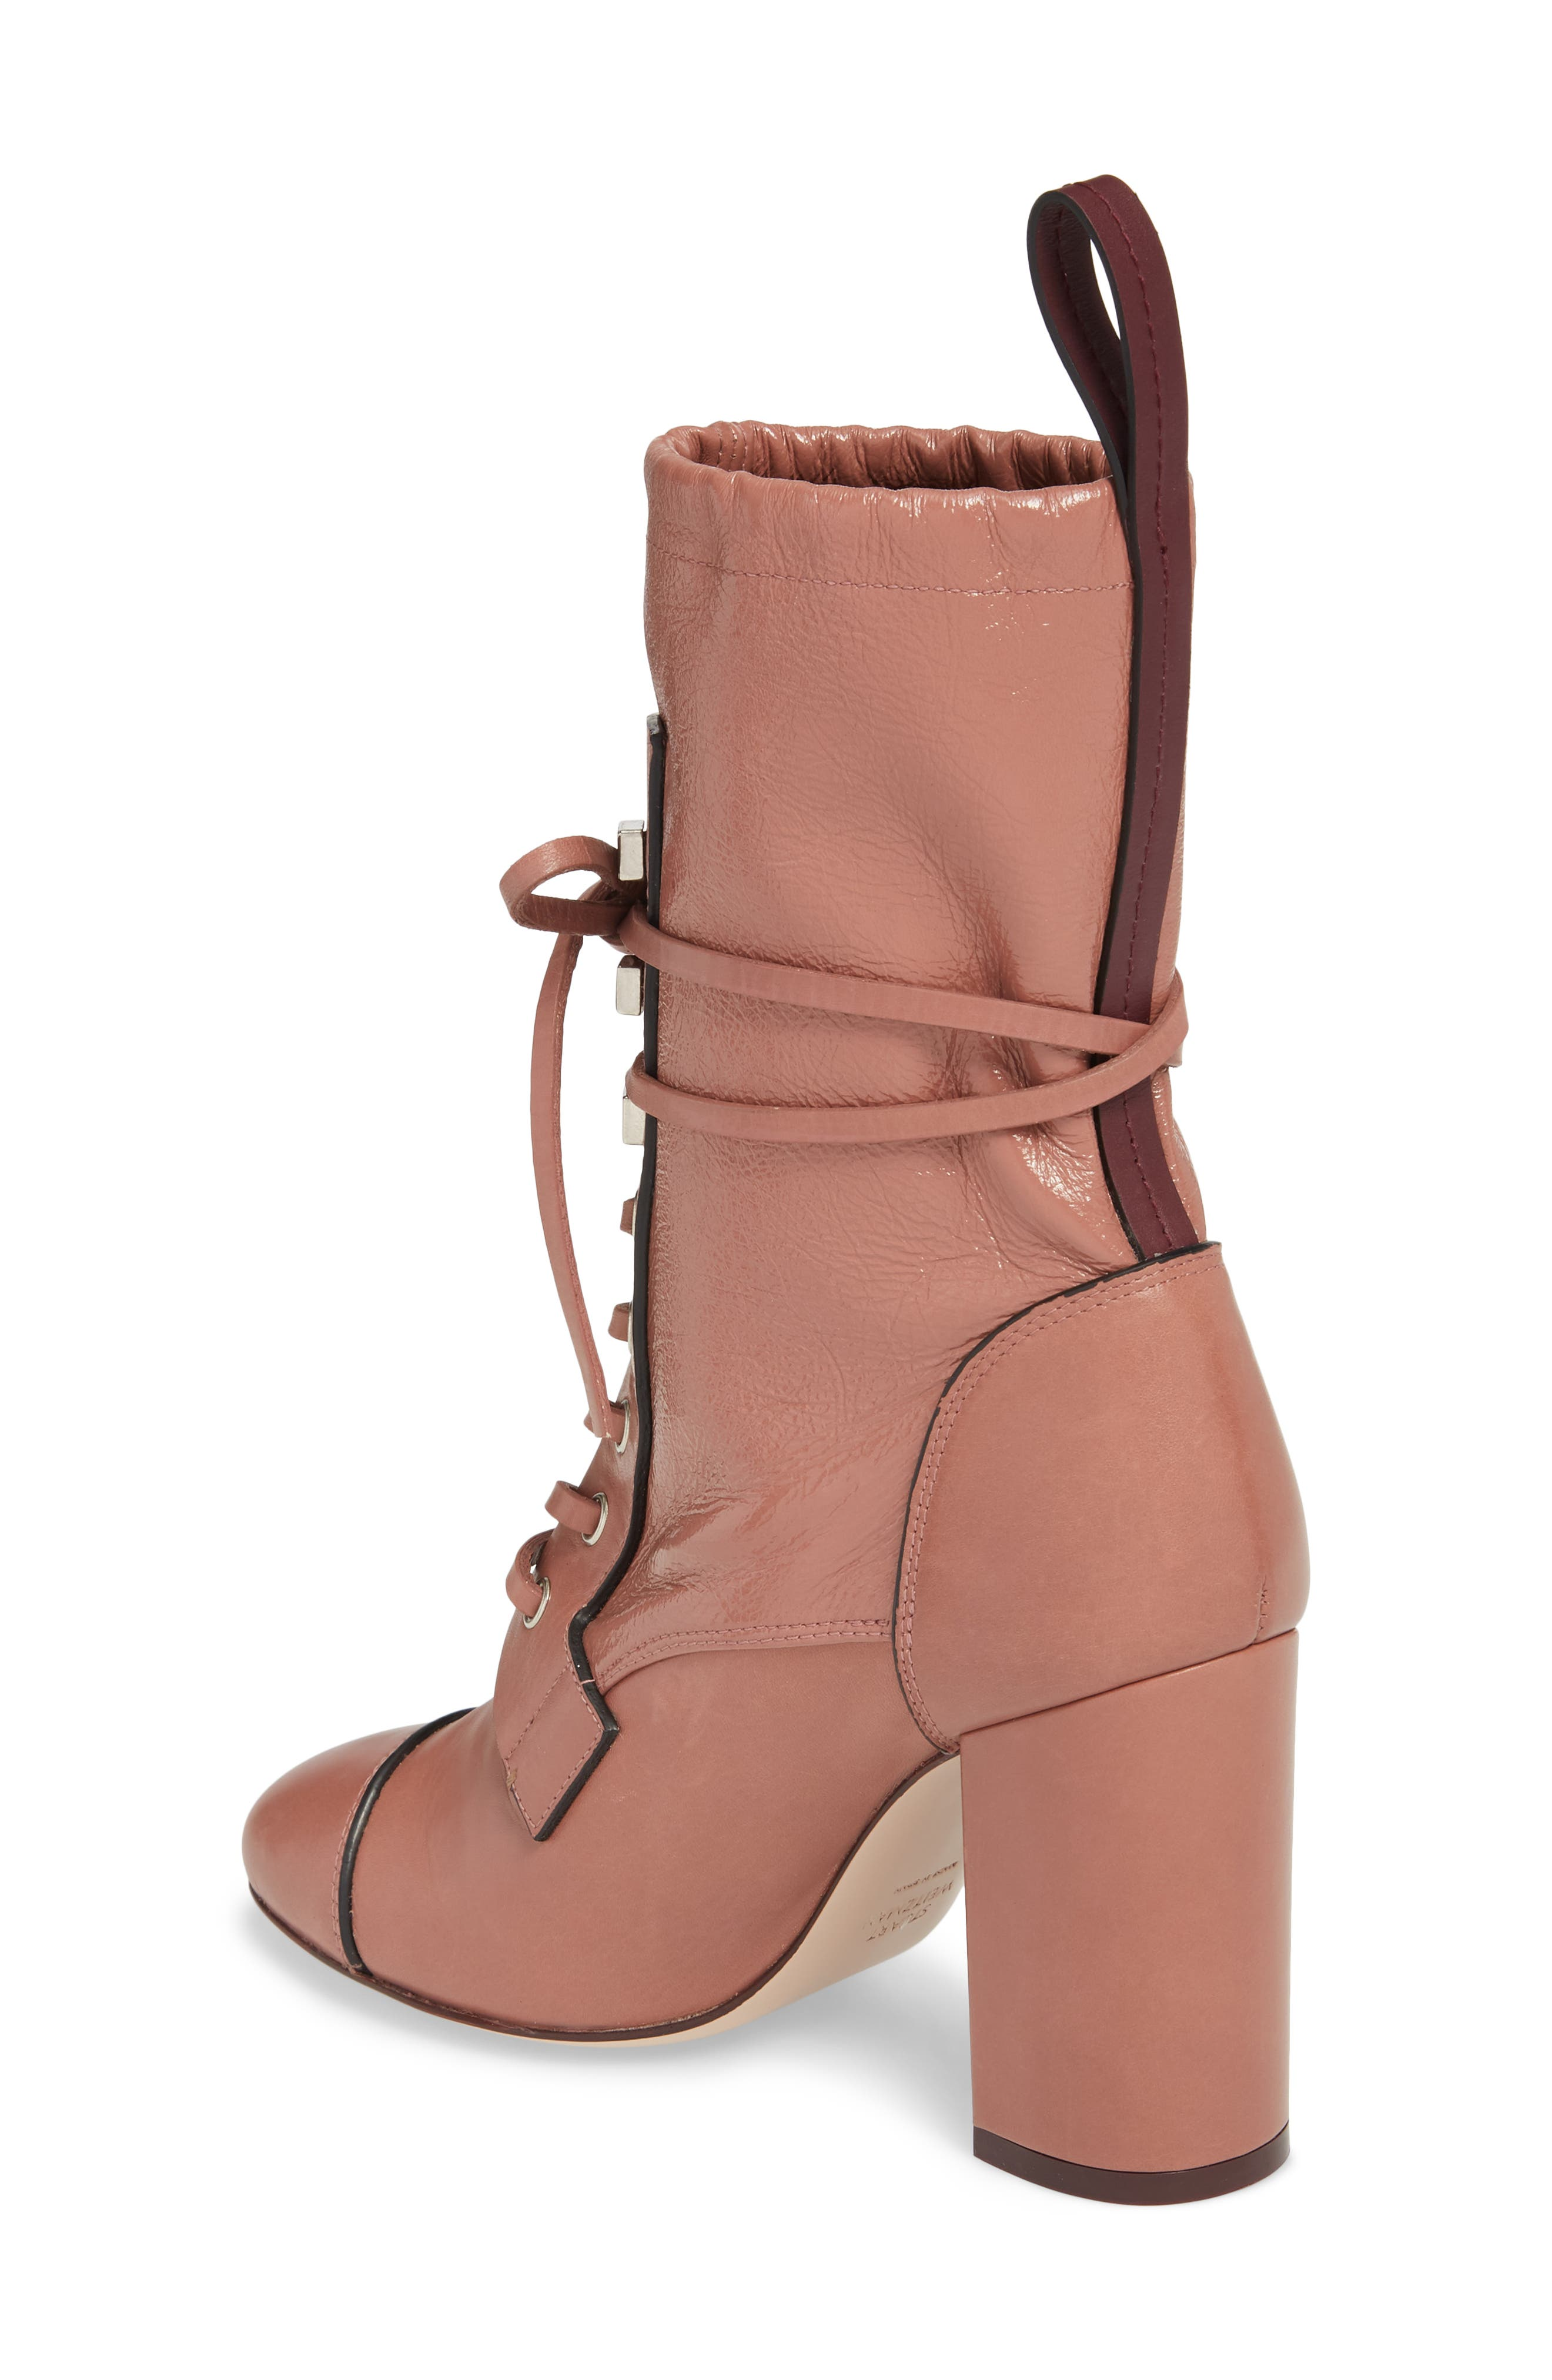 Veruka Lace-Up Boot,                             Alternate thumbnail 2, color,                             ROSE CLAY GLEAMING